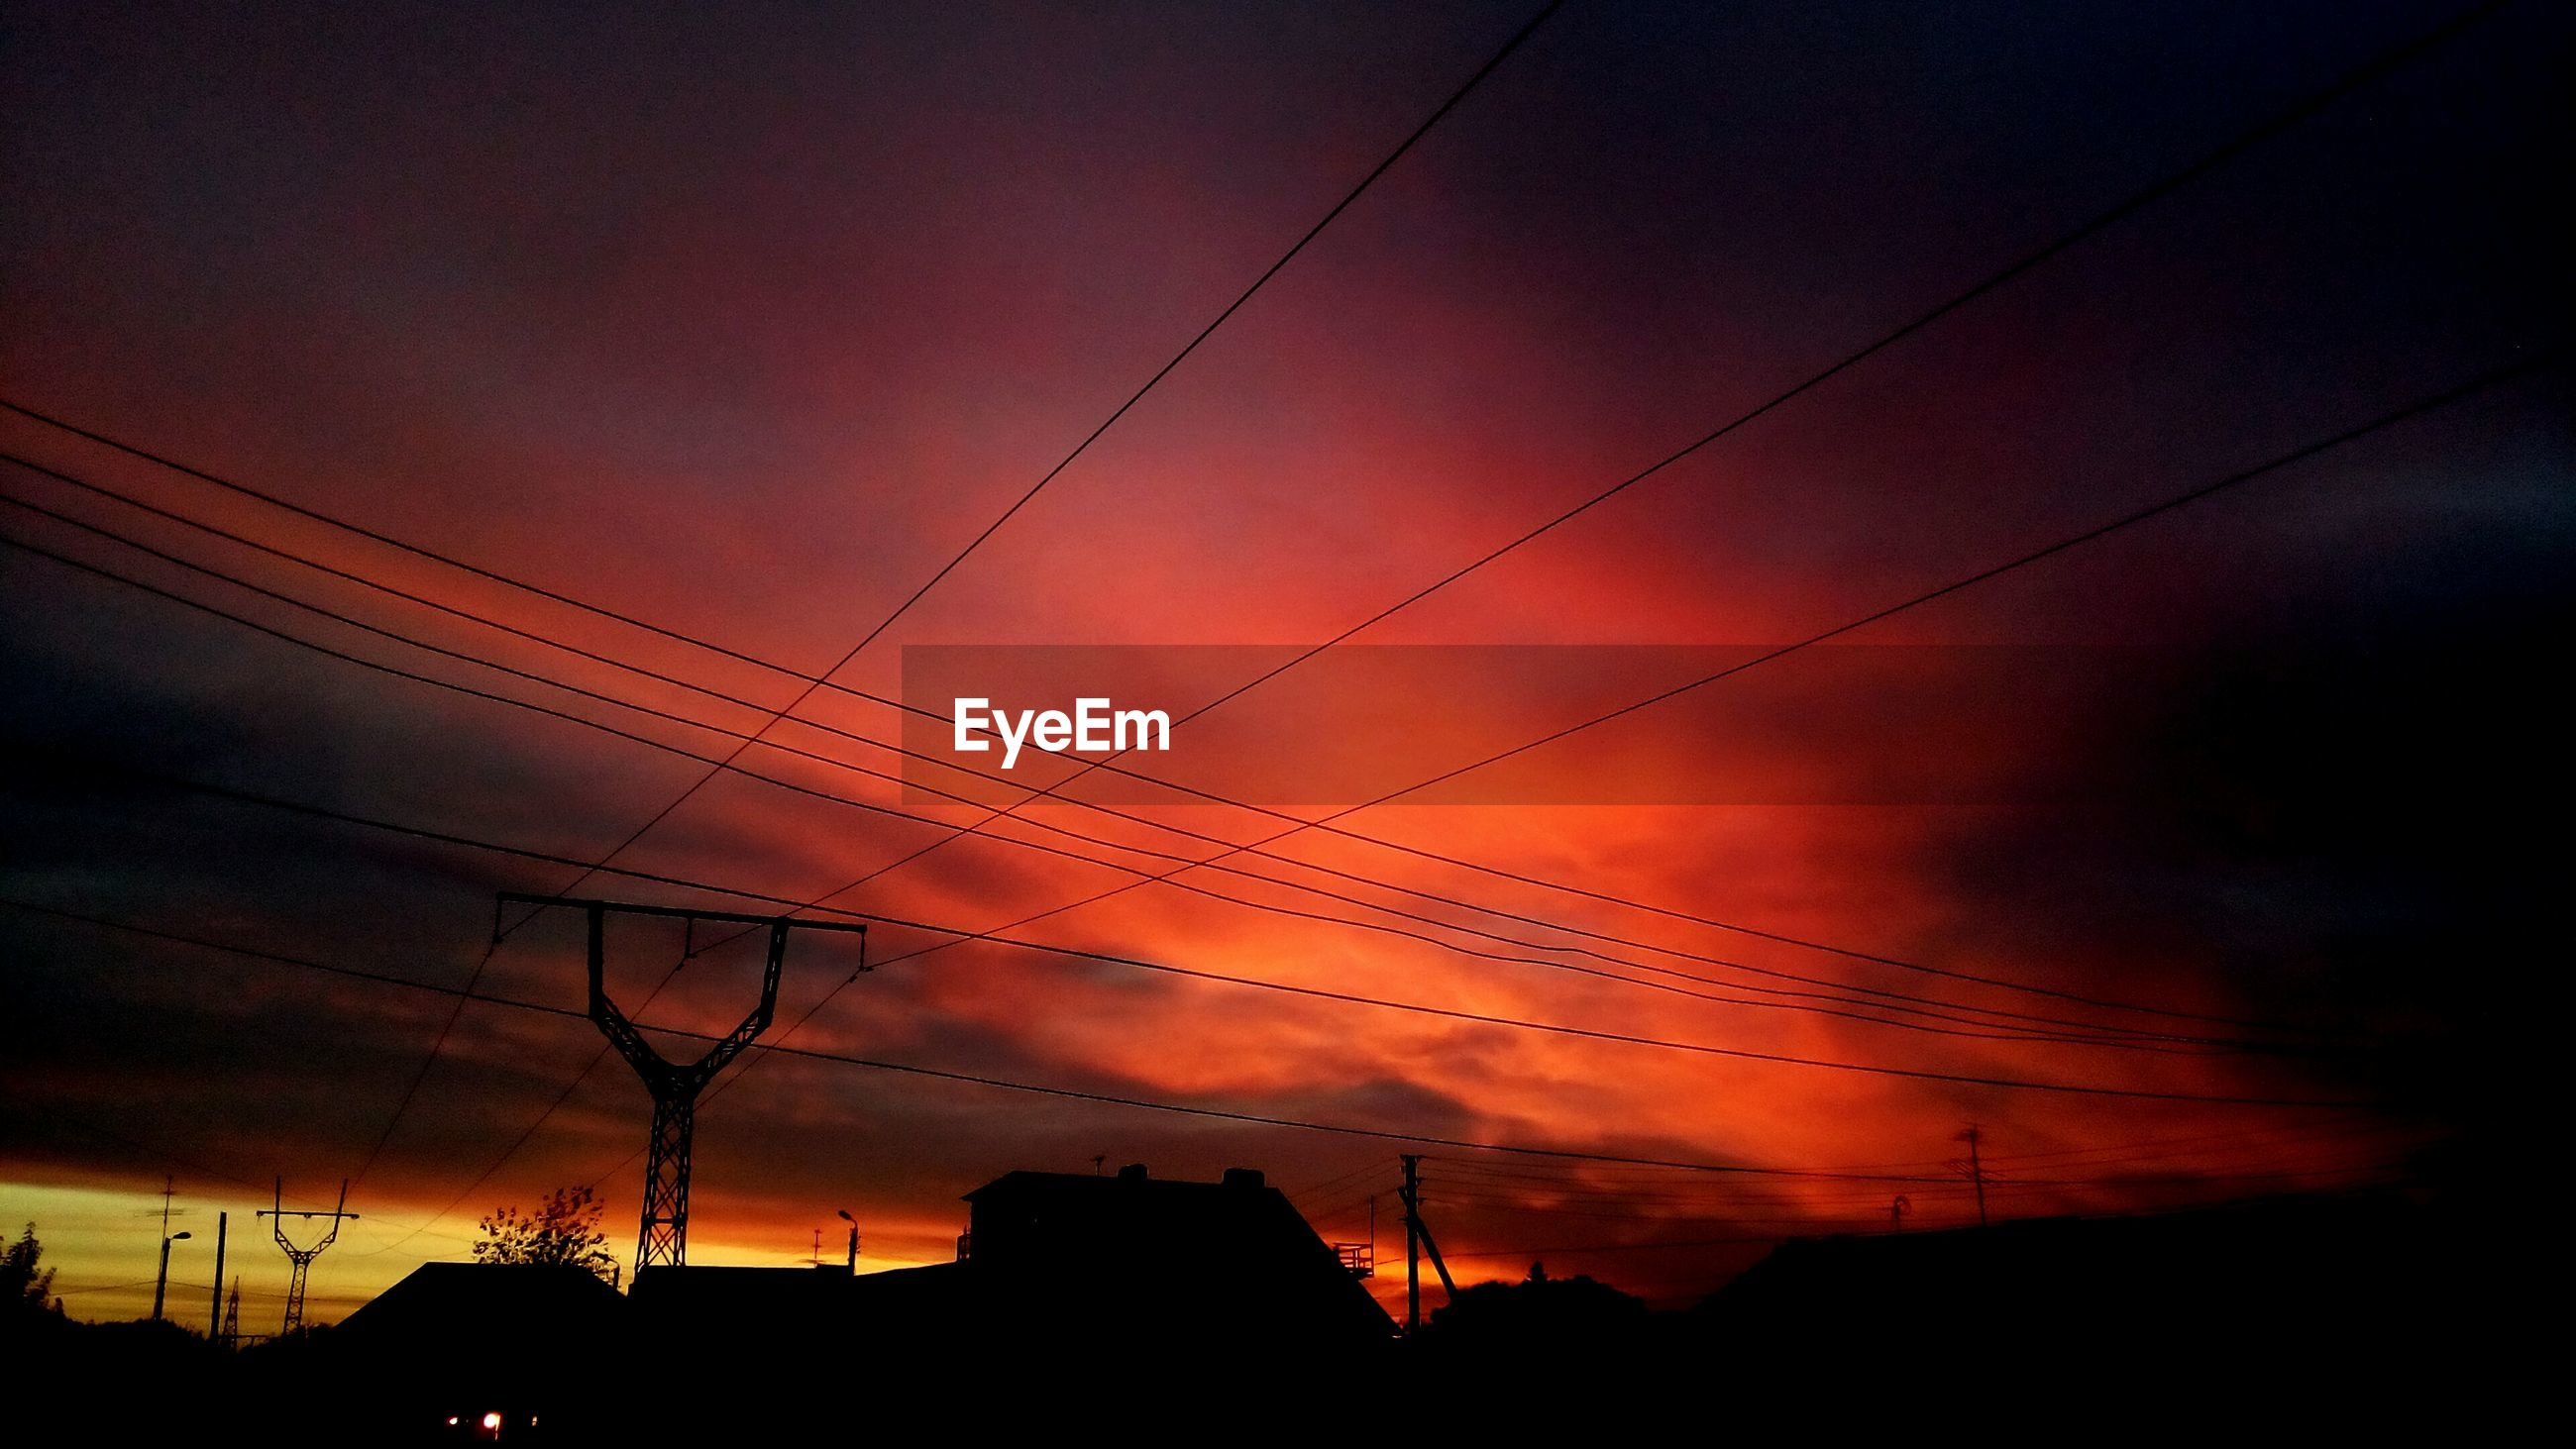 silhouette, architecture, built structure, power line, low angle view, building exterior, cable, electricity, sky, sunset, power supply, cloud - sky, dramatic sky, cloud, electricity pylon, atmospheric mood, high section, power cable, cloudscape, outdoors, scenics, moody sky, majestic, no people, back lit, romantic sky, cloudy, atmosphere